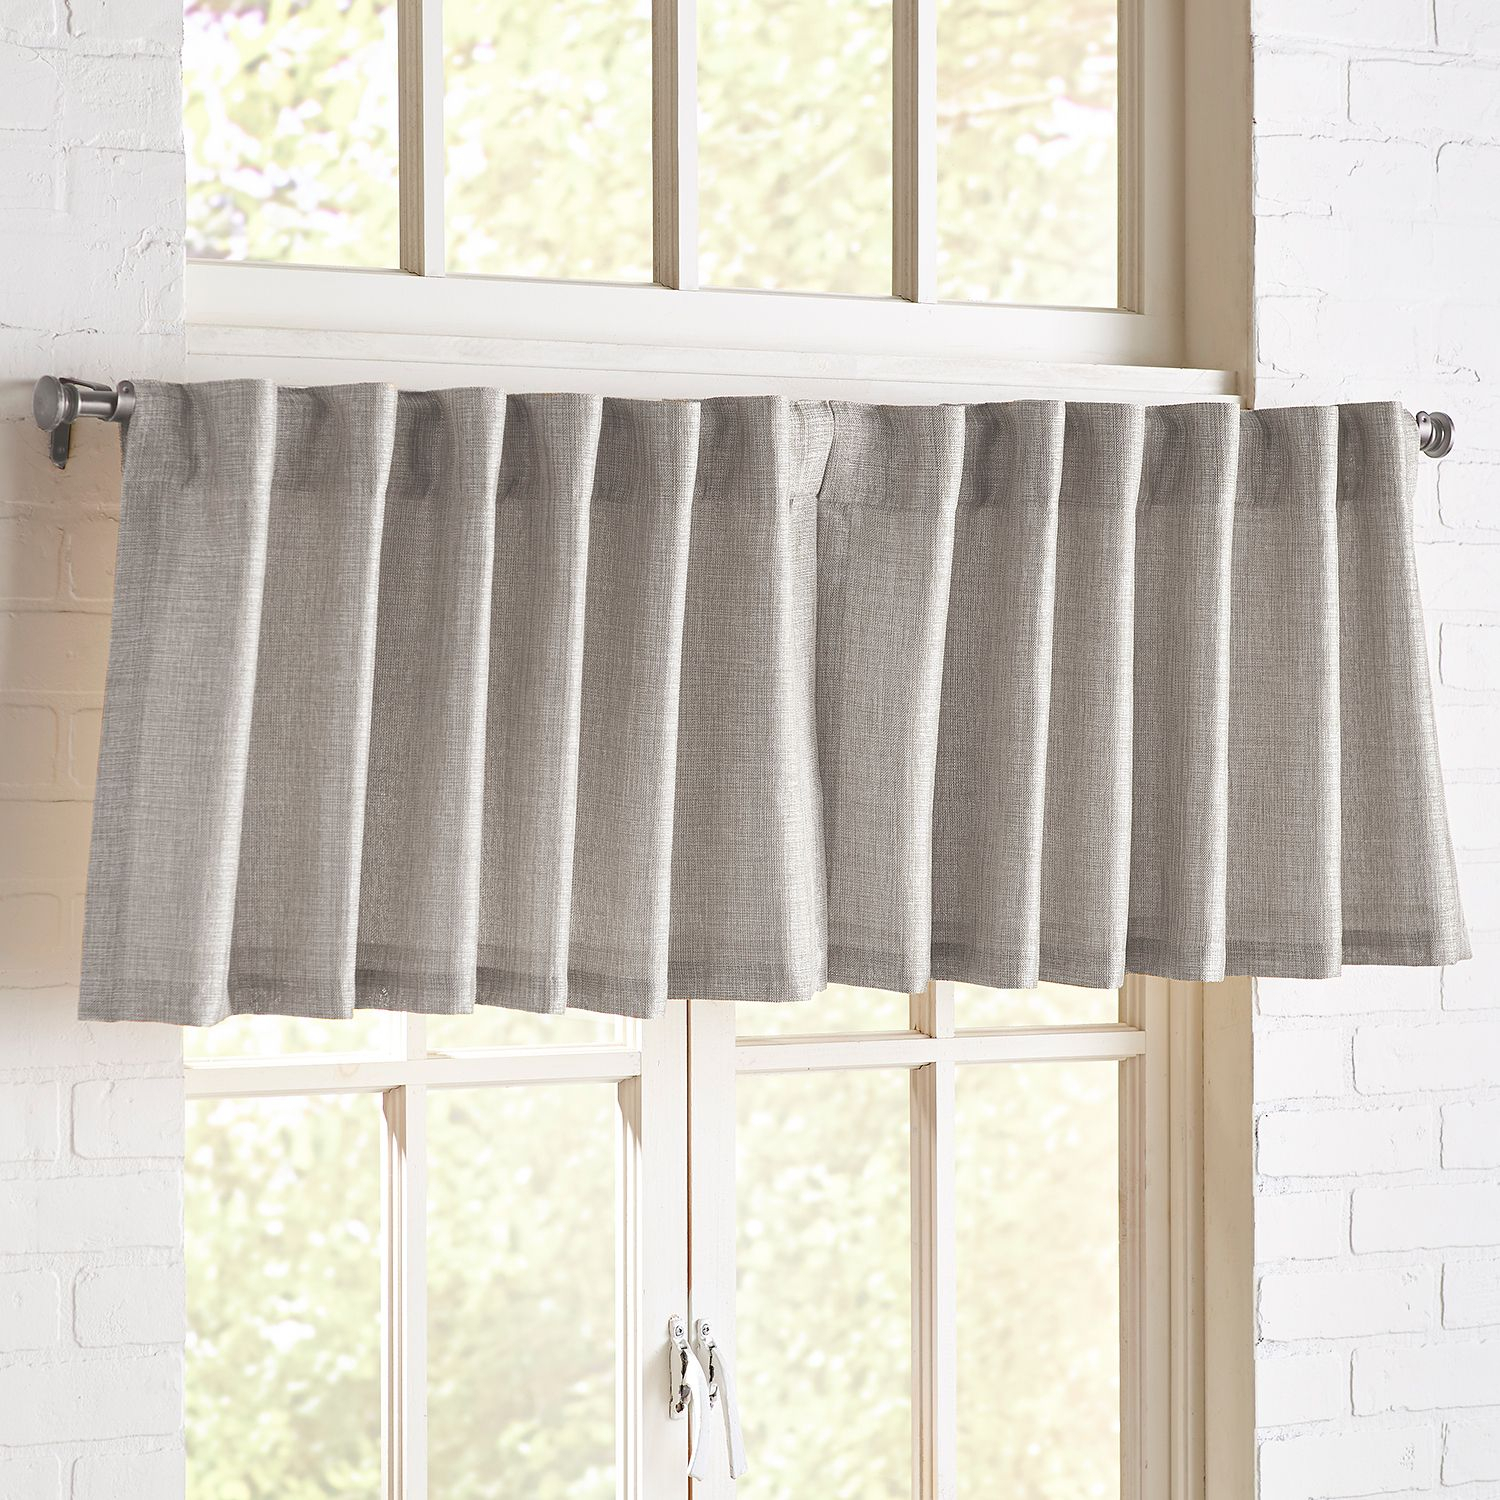 Shimmer Silver Valance | *curtains > Solid Curtains Regarding Silver Vertical Ruffled Waterfall Valance And Curtain Tiers (View 9 of 20)